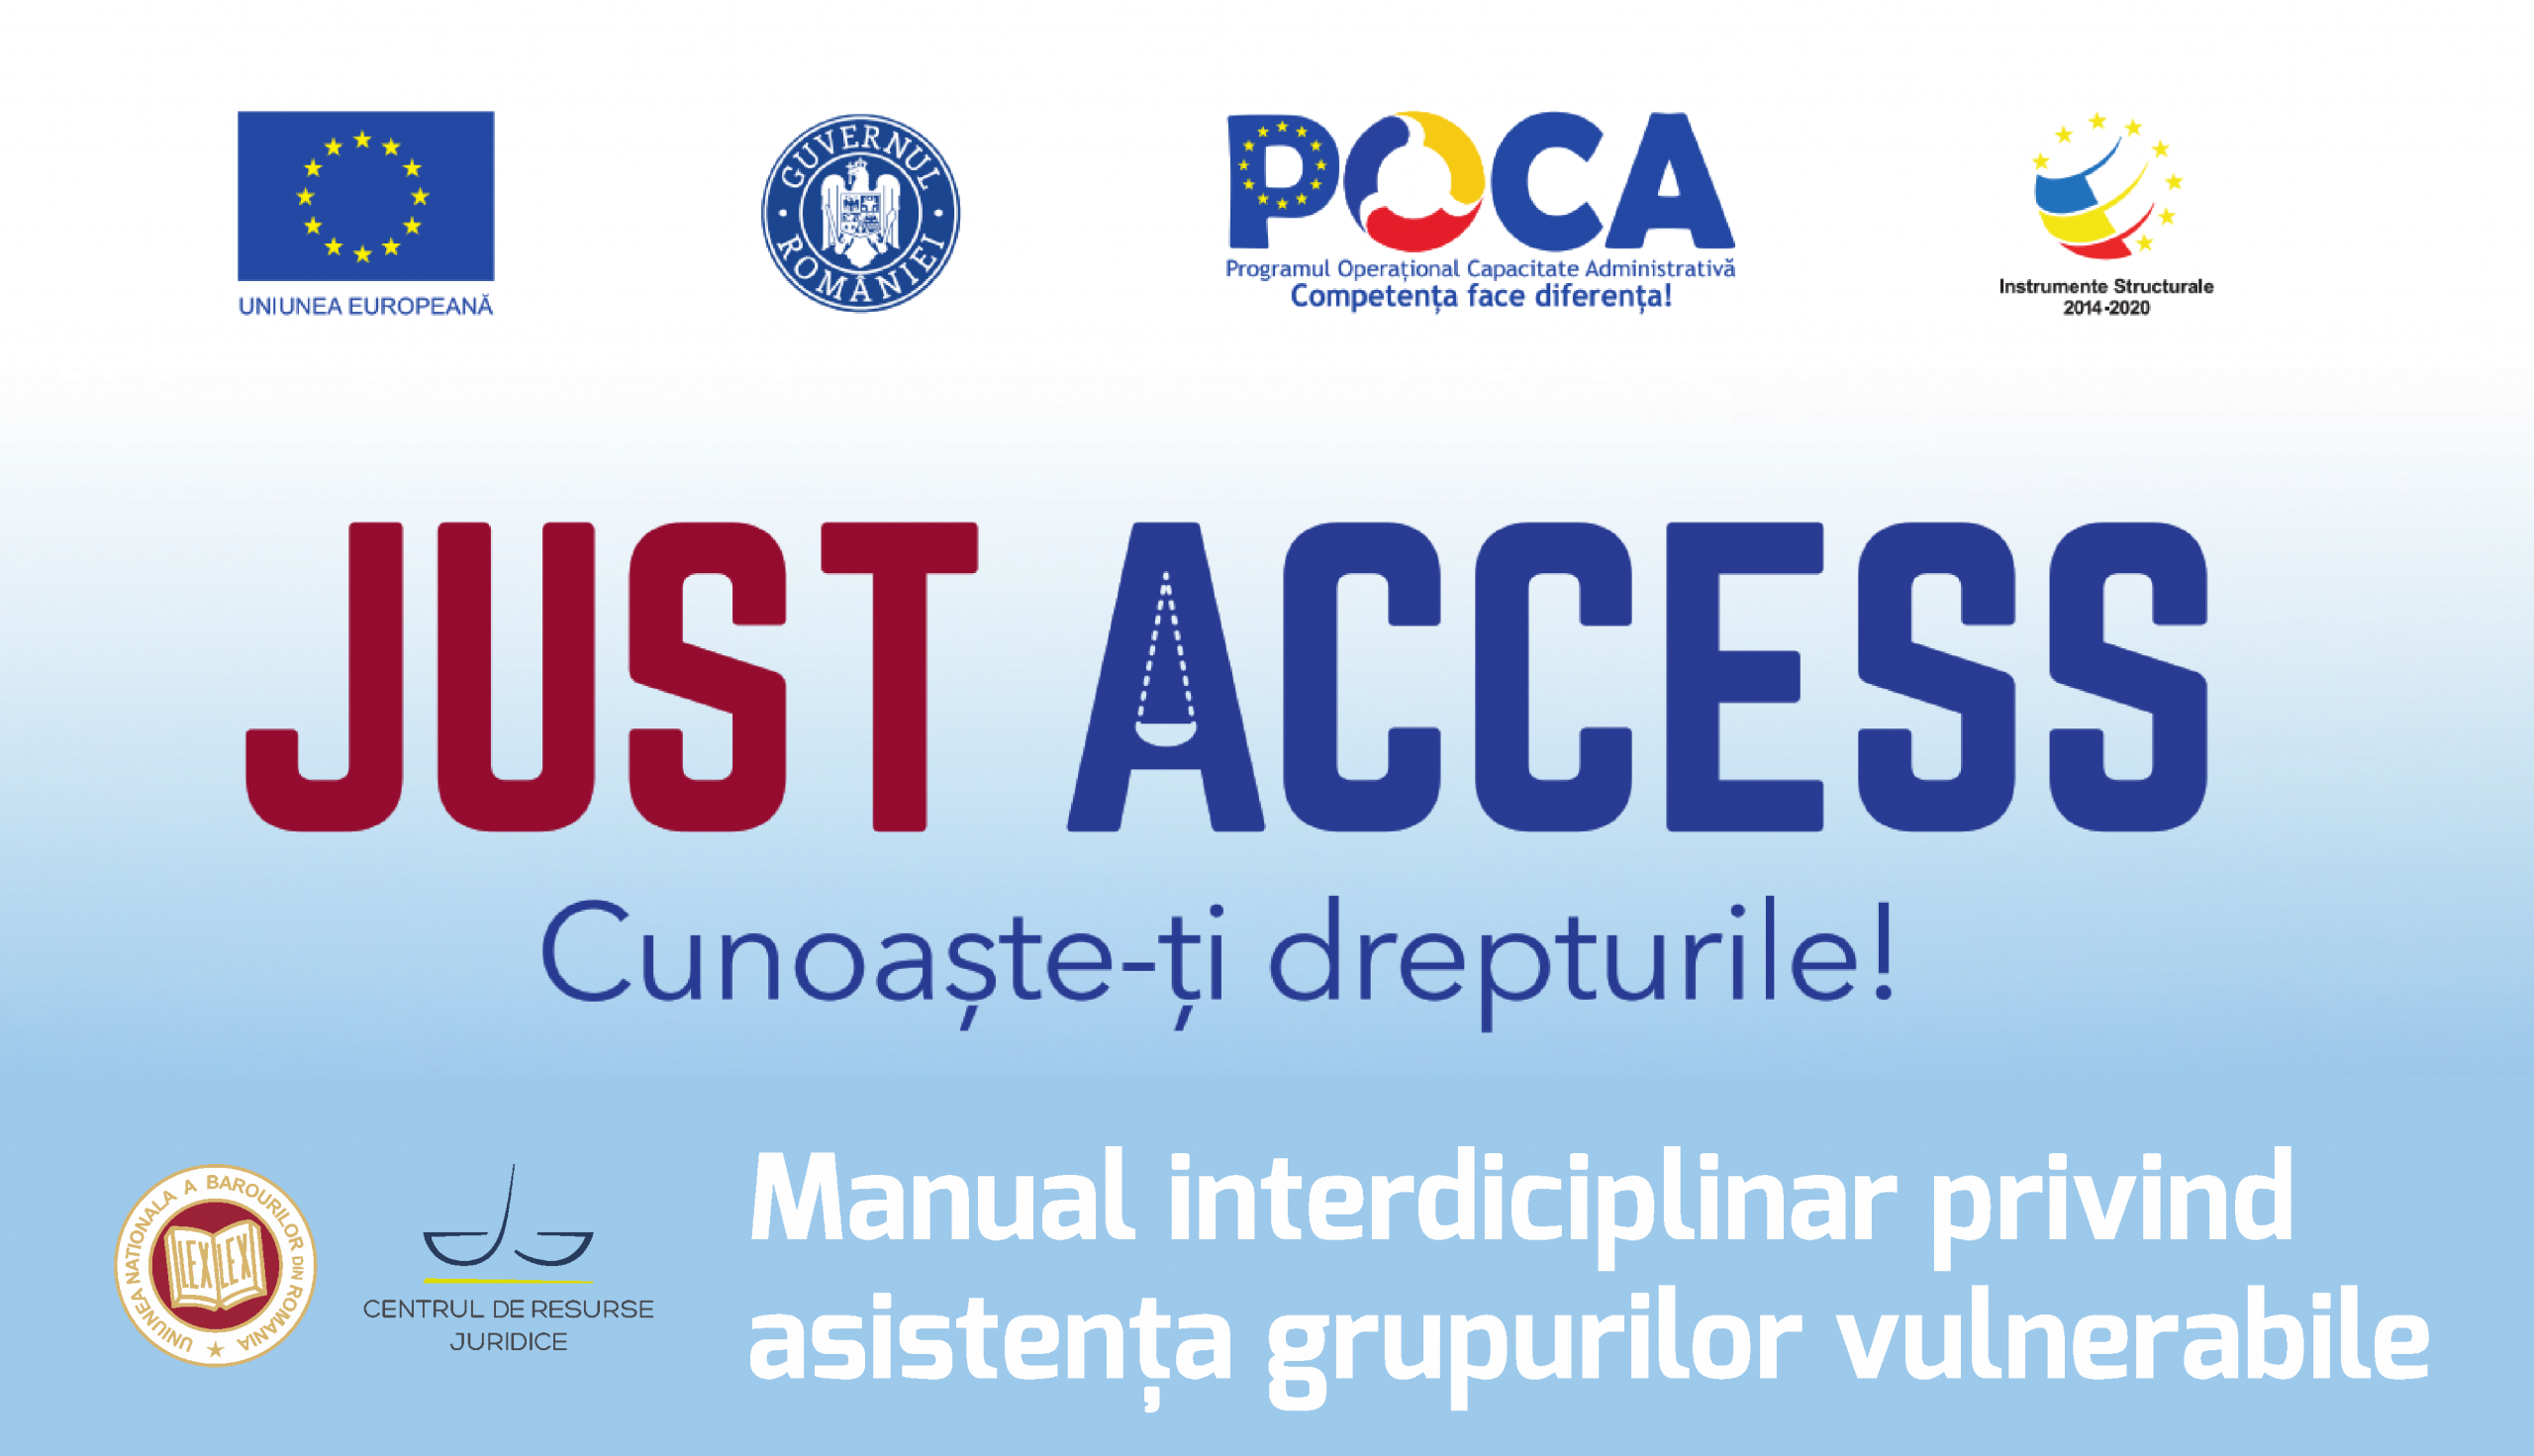 justaccesscover-1-scaled